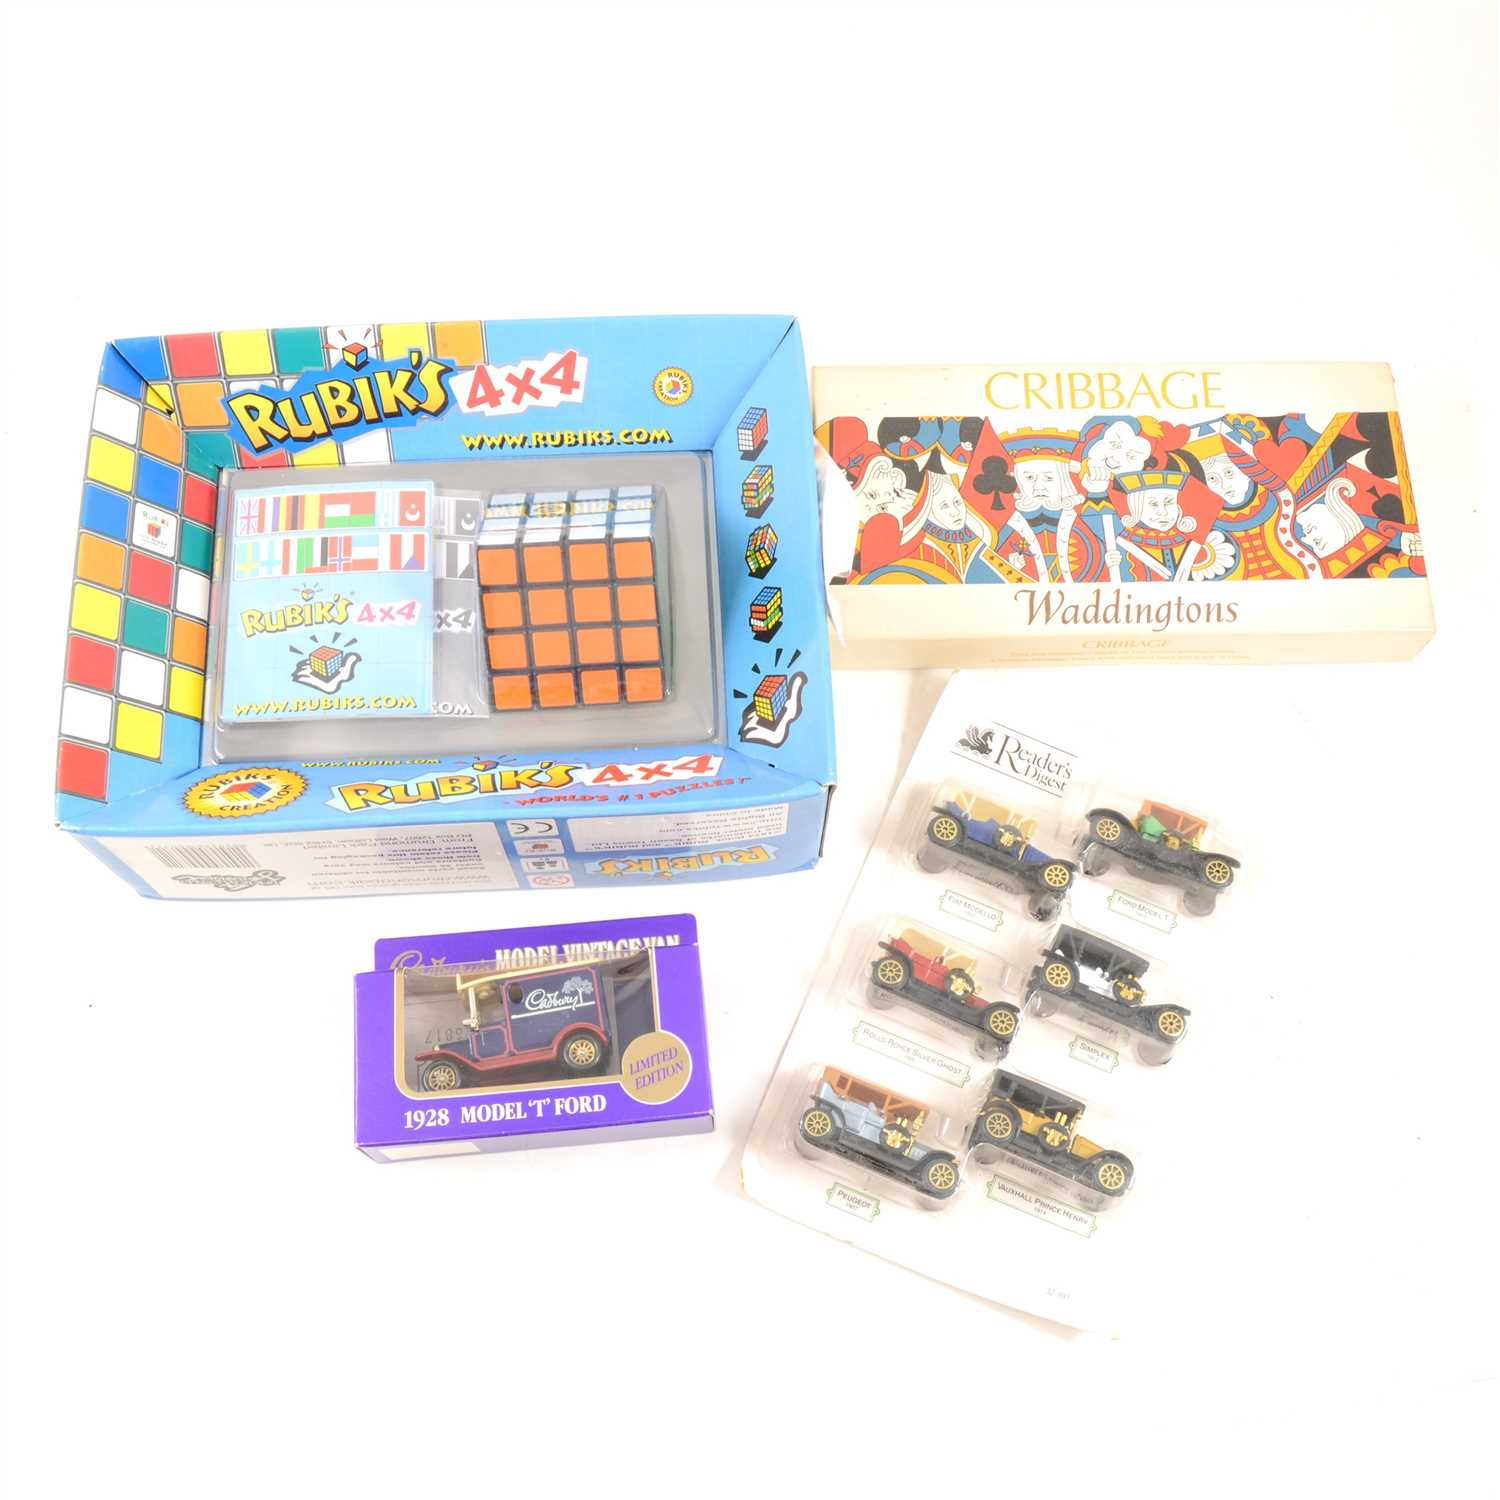 Lot 144-Large quantity of vintage toys and games, including board games, cars games and others, four boxes.